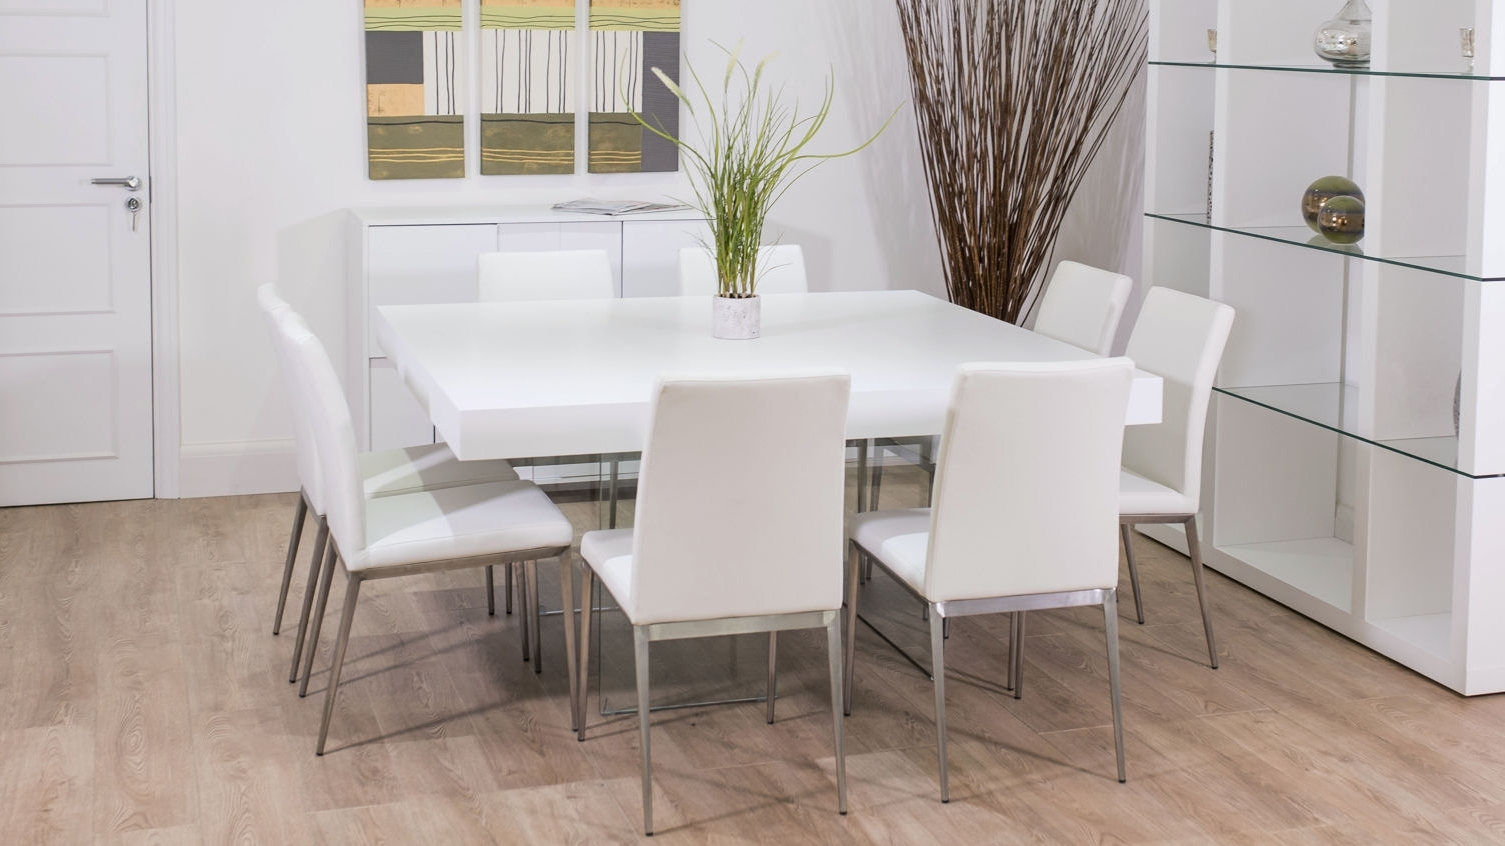 White Dining Tables 8 Seater Intended For Preferred Smartly Seat Square Then Ideas Square Table Together With Opulent (View 21 of 25)